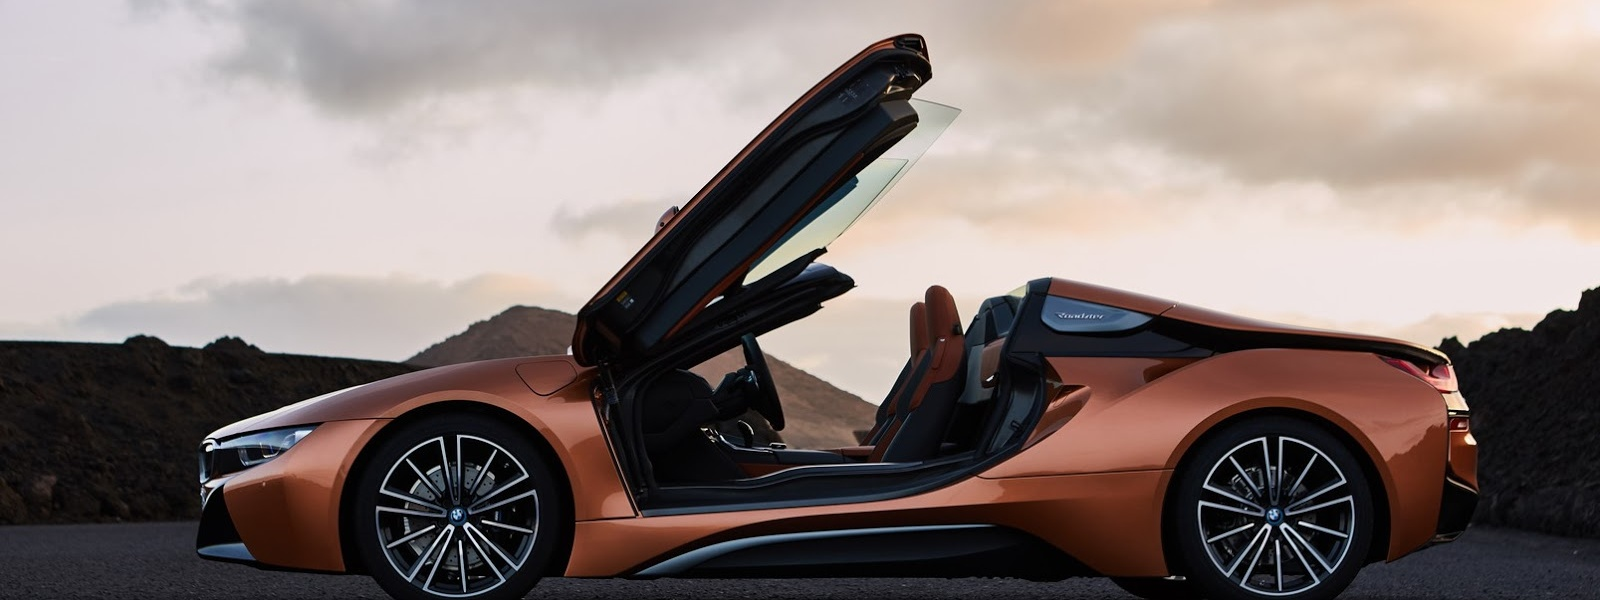 2019-BMW-i8-Roadster-Coupe-61.jpg